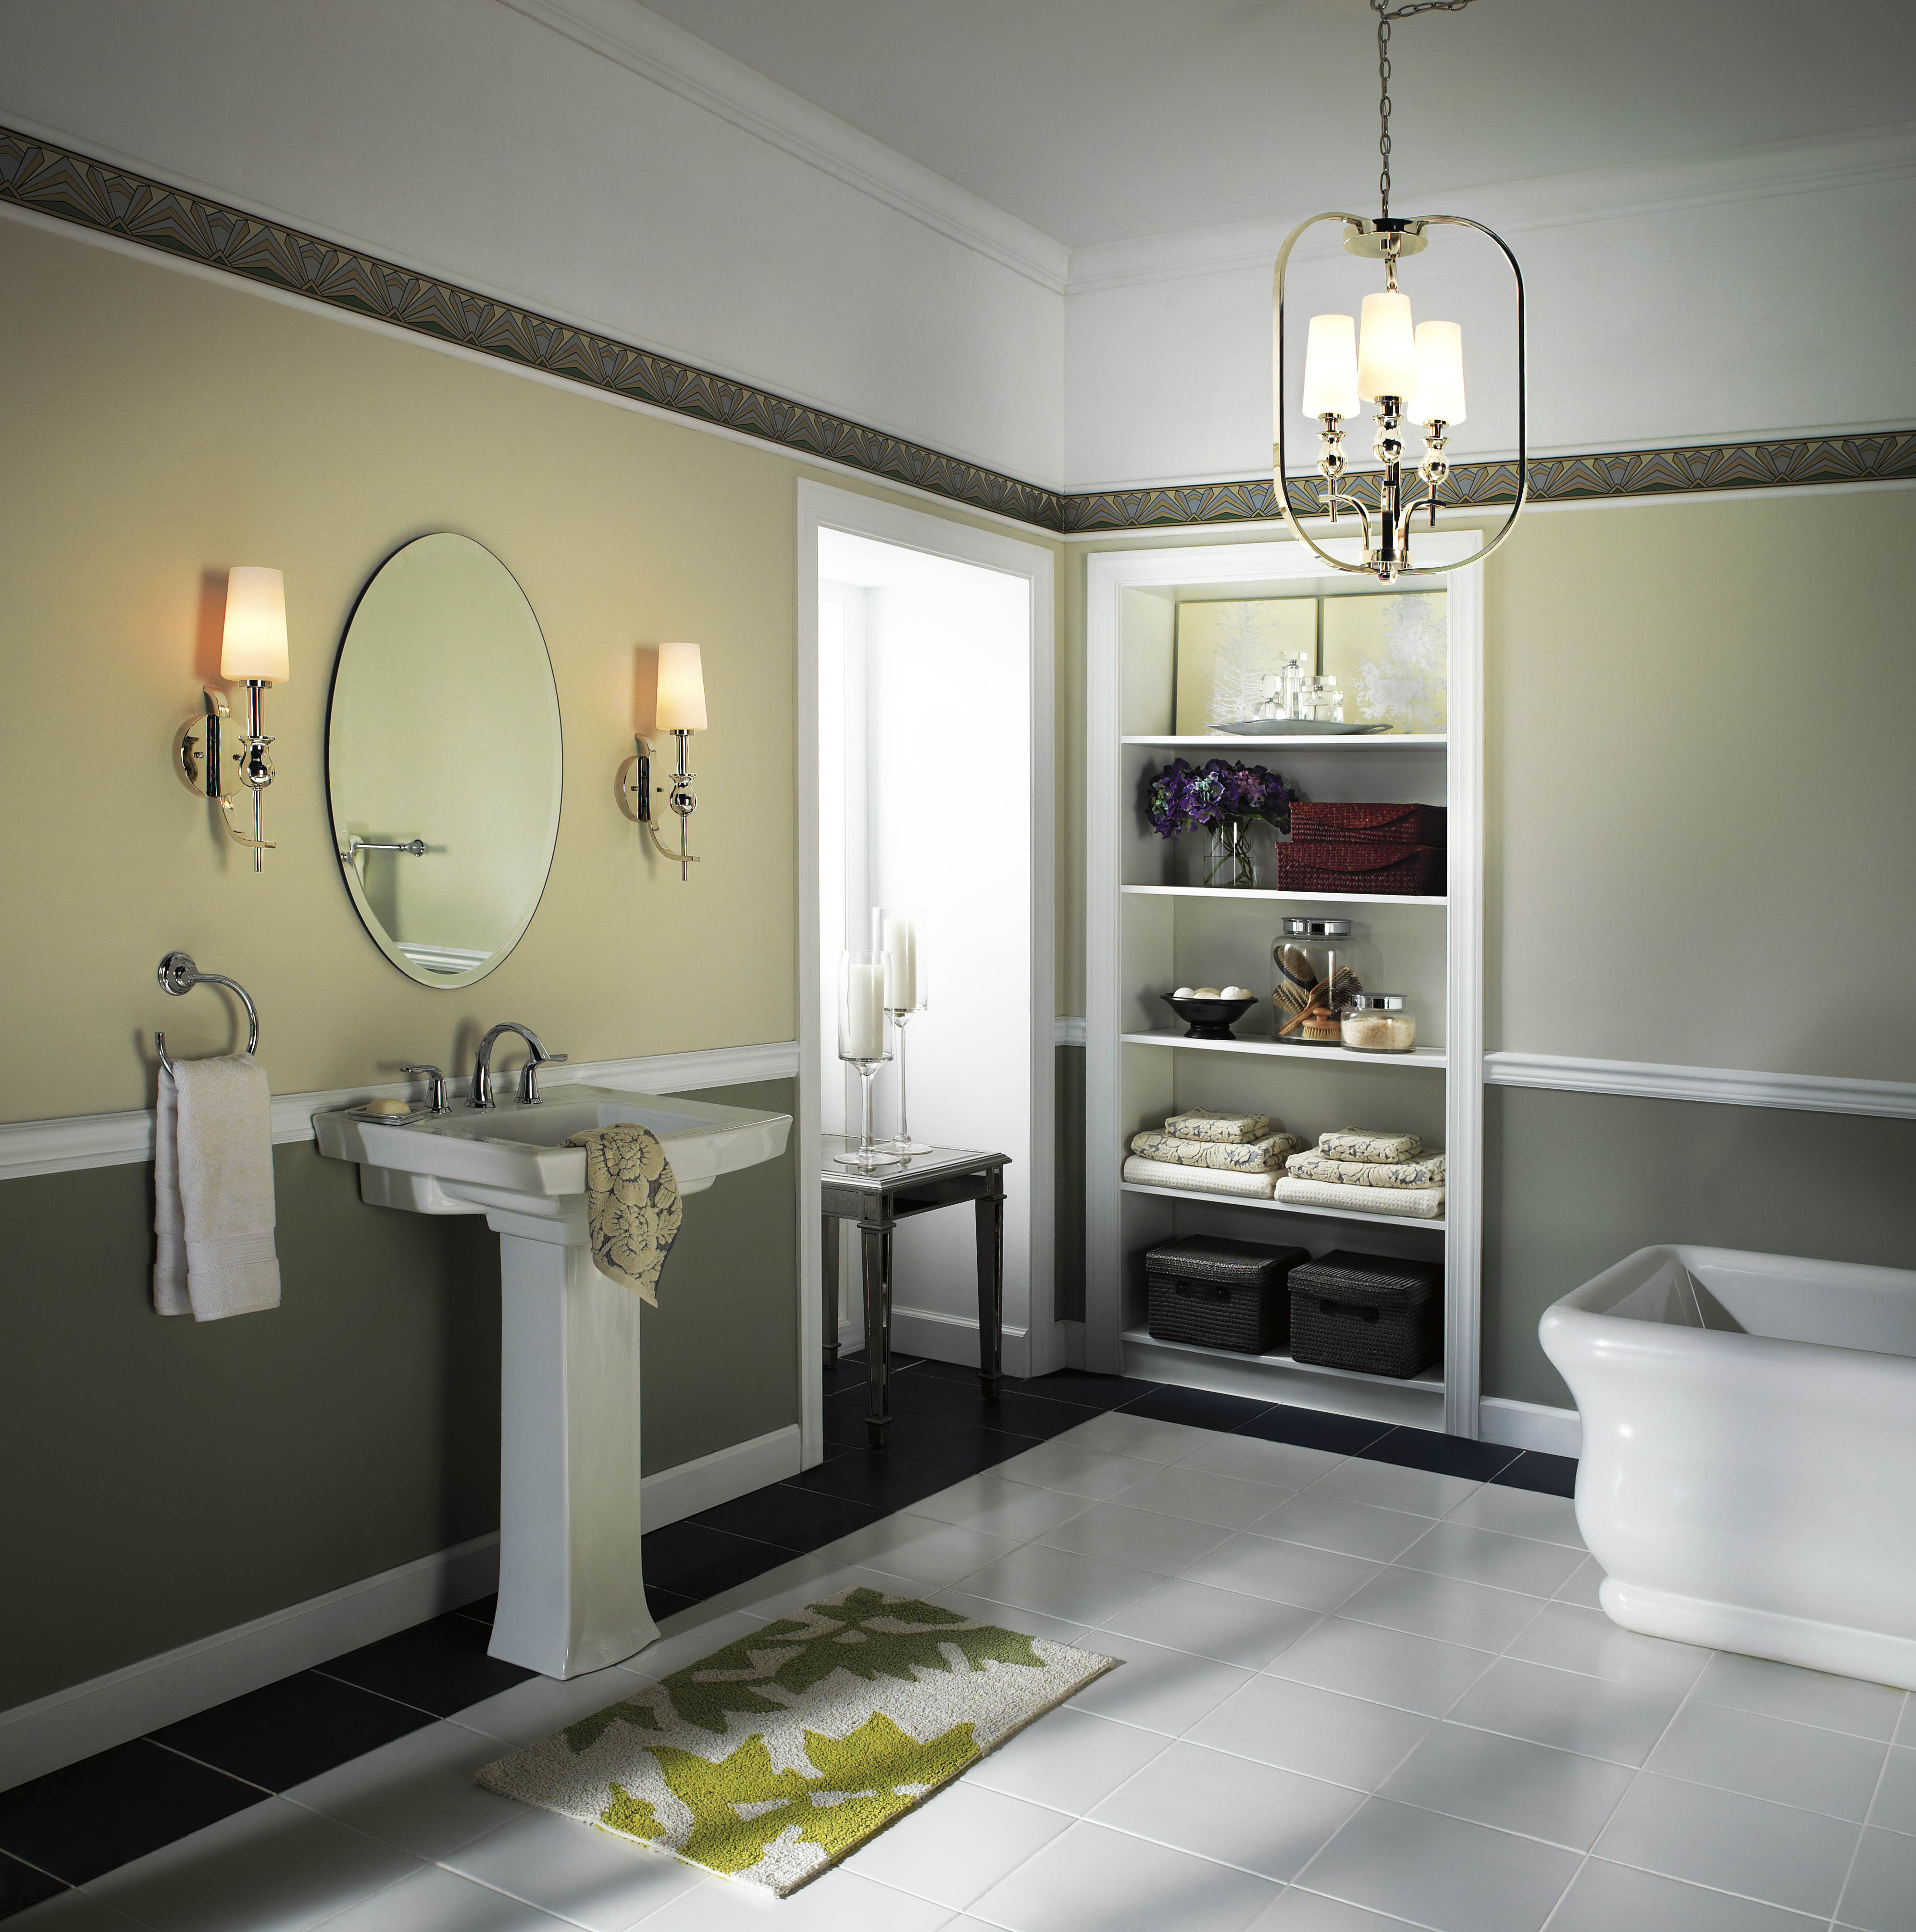 Modern Bathroom With Double Lowes Bathroom Lighting On Olive Wall Plus A  Mirror And A White